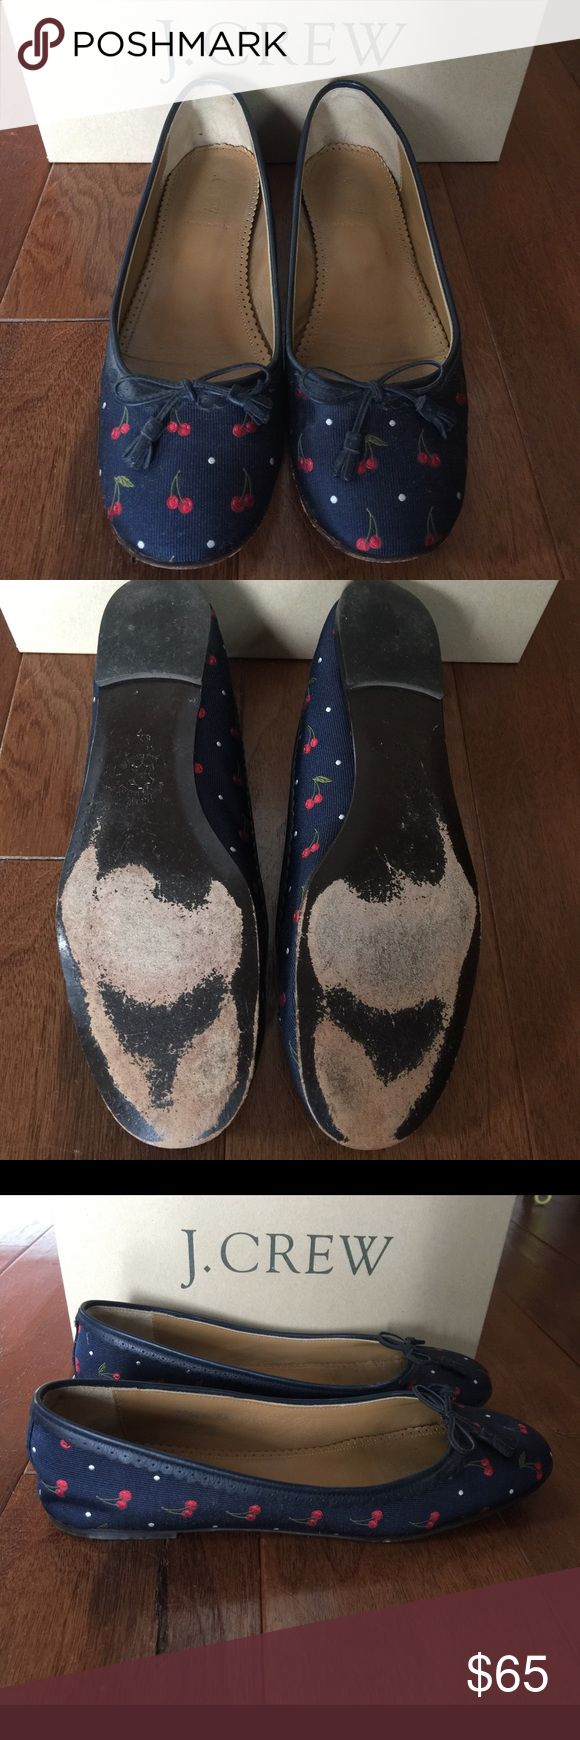 J. Crew flats Navy blue ballet flats with white polka dots and cherries! Only signs of wear are the bottoms and the logo is rubbed off of the inside. Please feel free to ask any questions:) Have only been worn a handful of times! Comes with original box. J. Crew Shoes Flats & Loafers